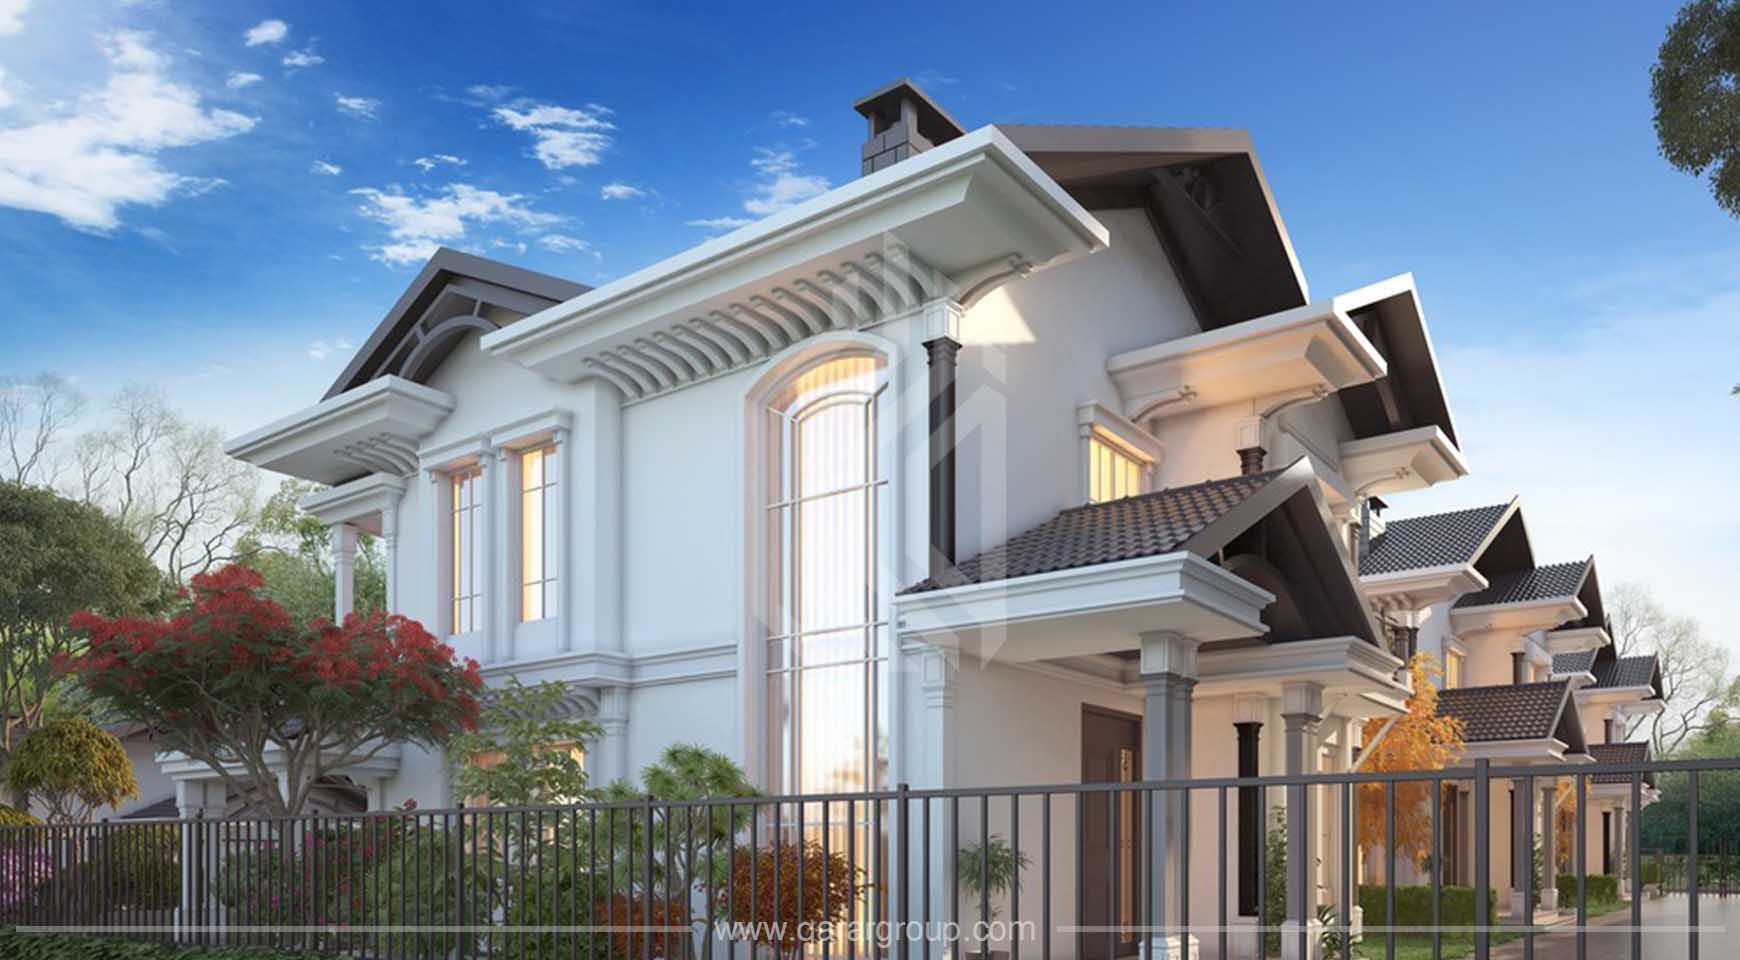 Qarar real estate  belin villas